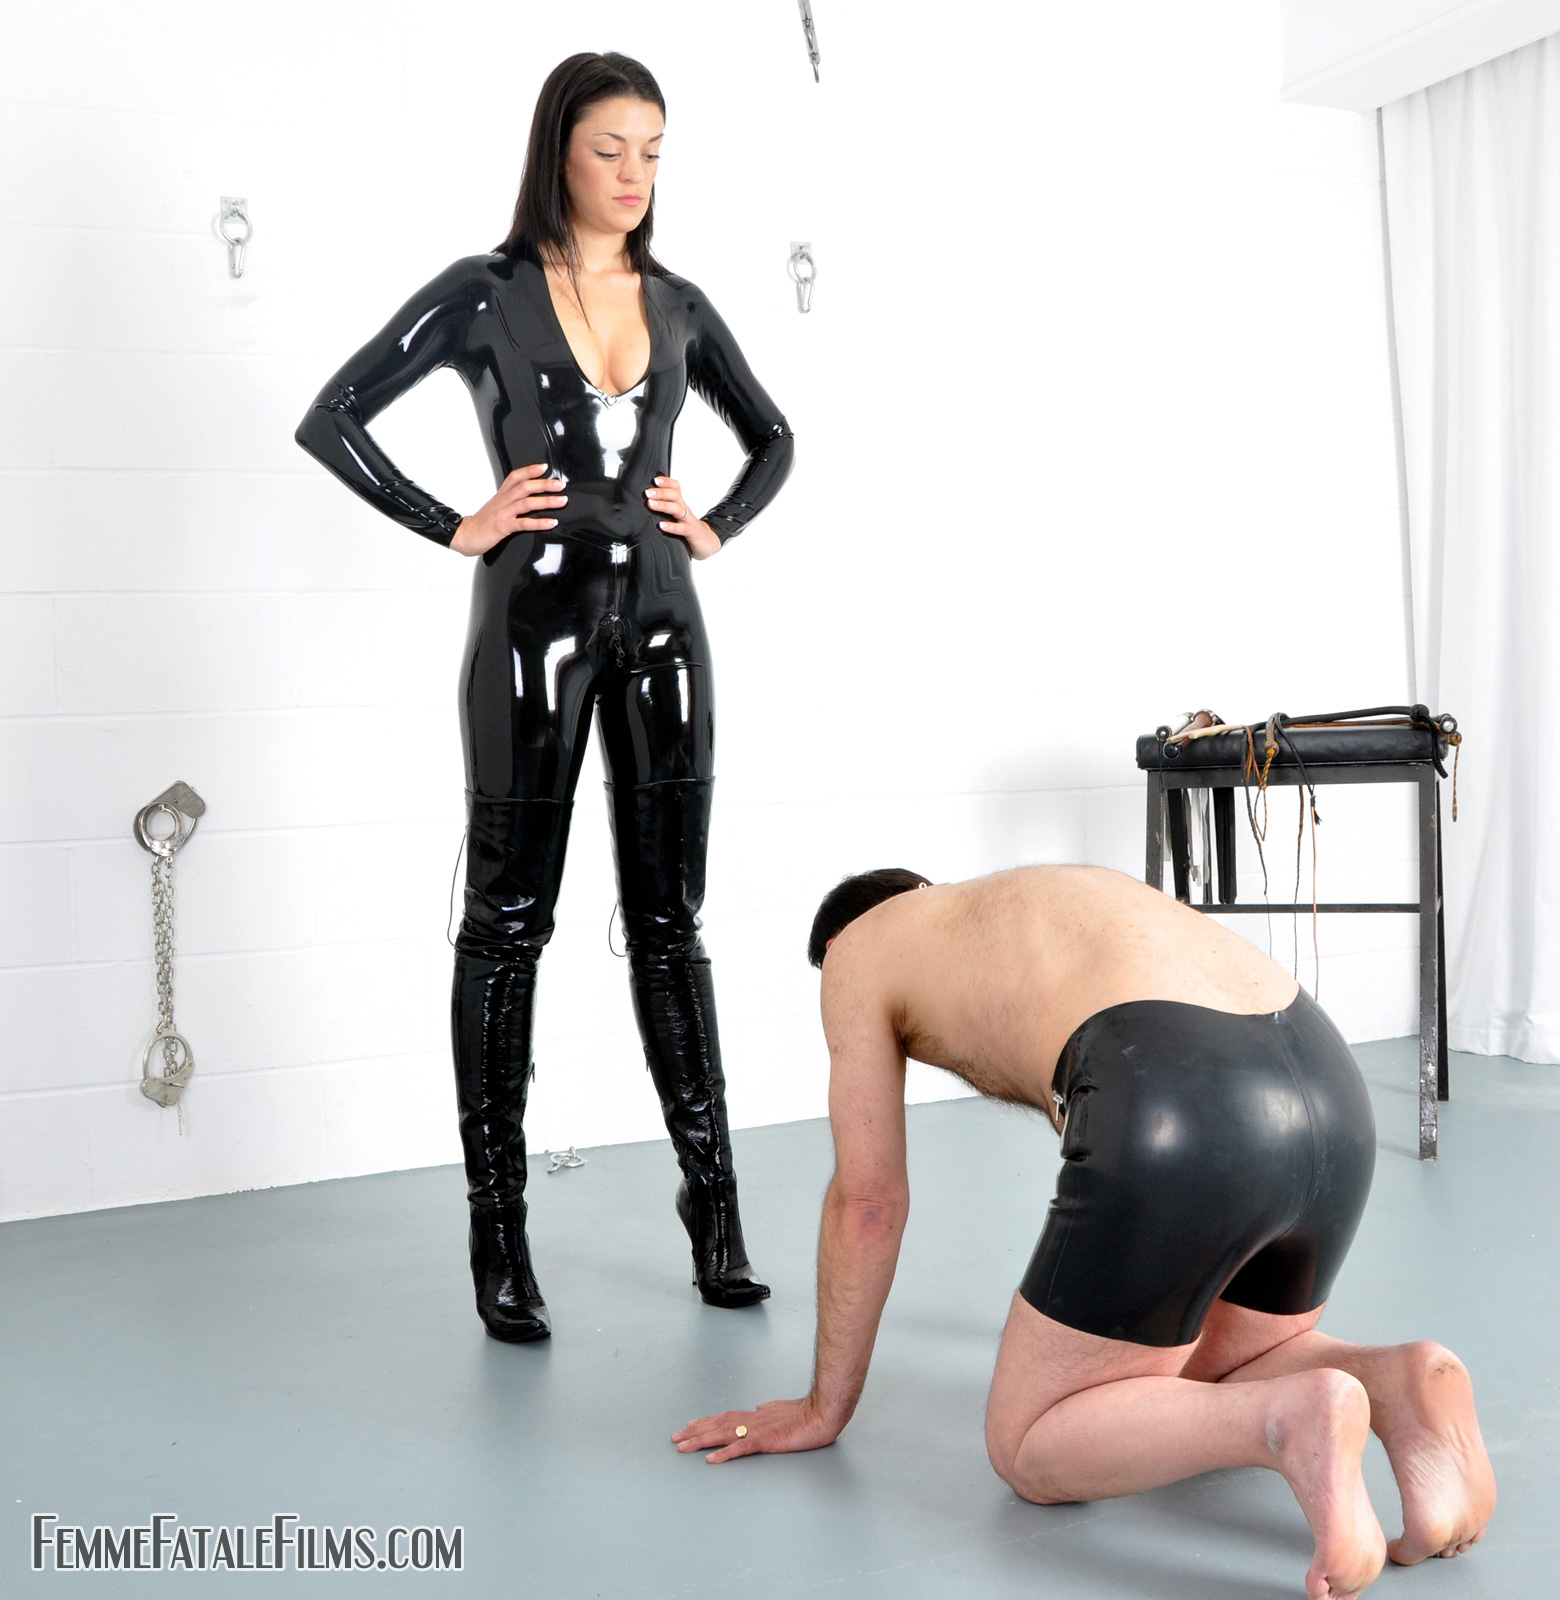 How domination mistress porn would